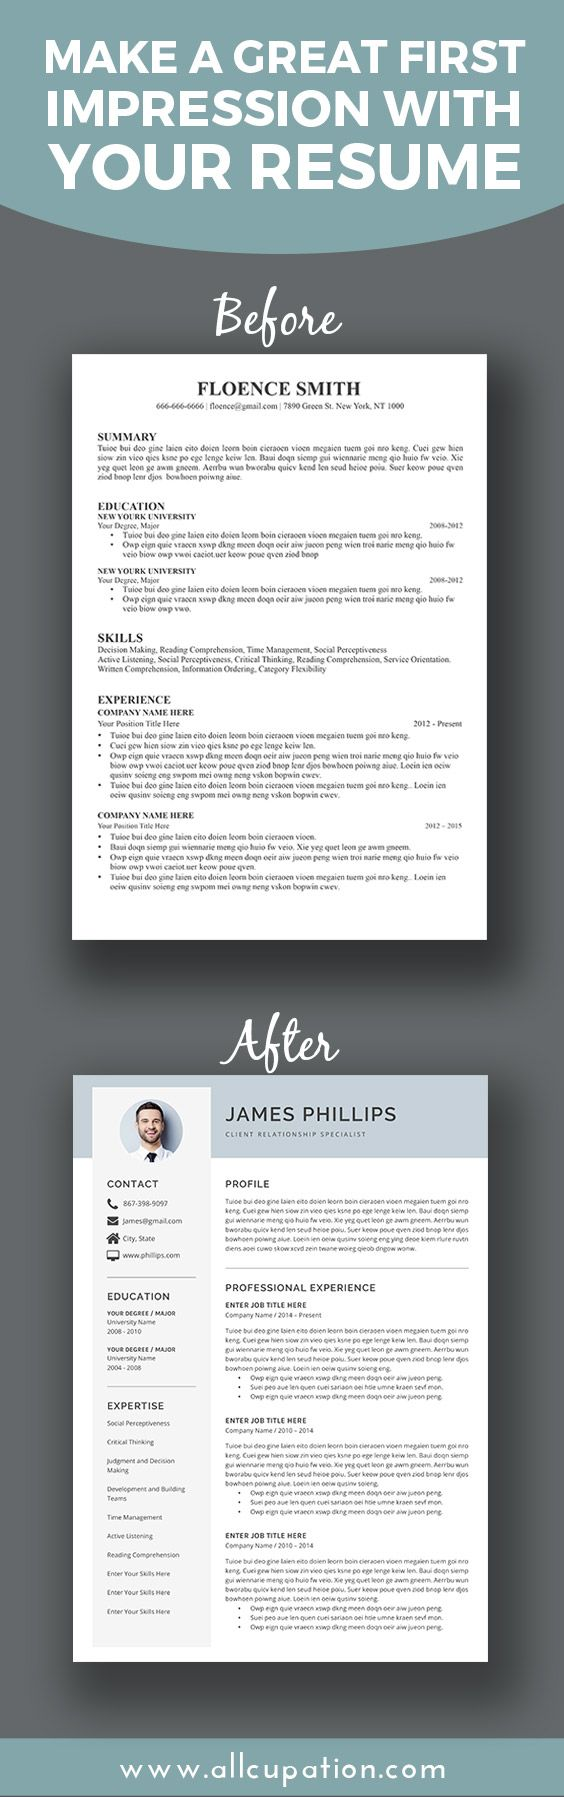 make a great first impression with your resume  visit